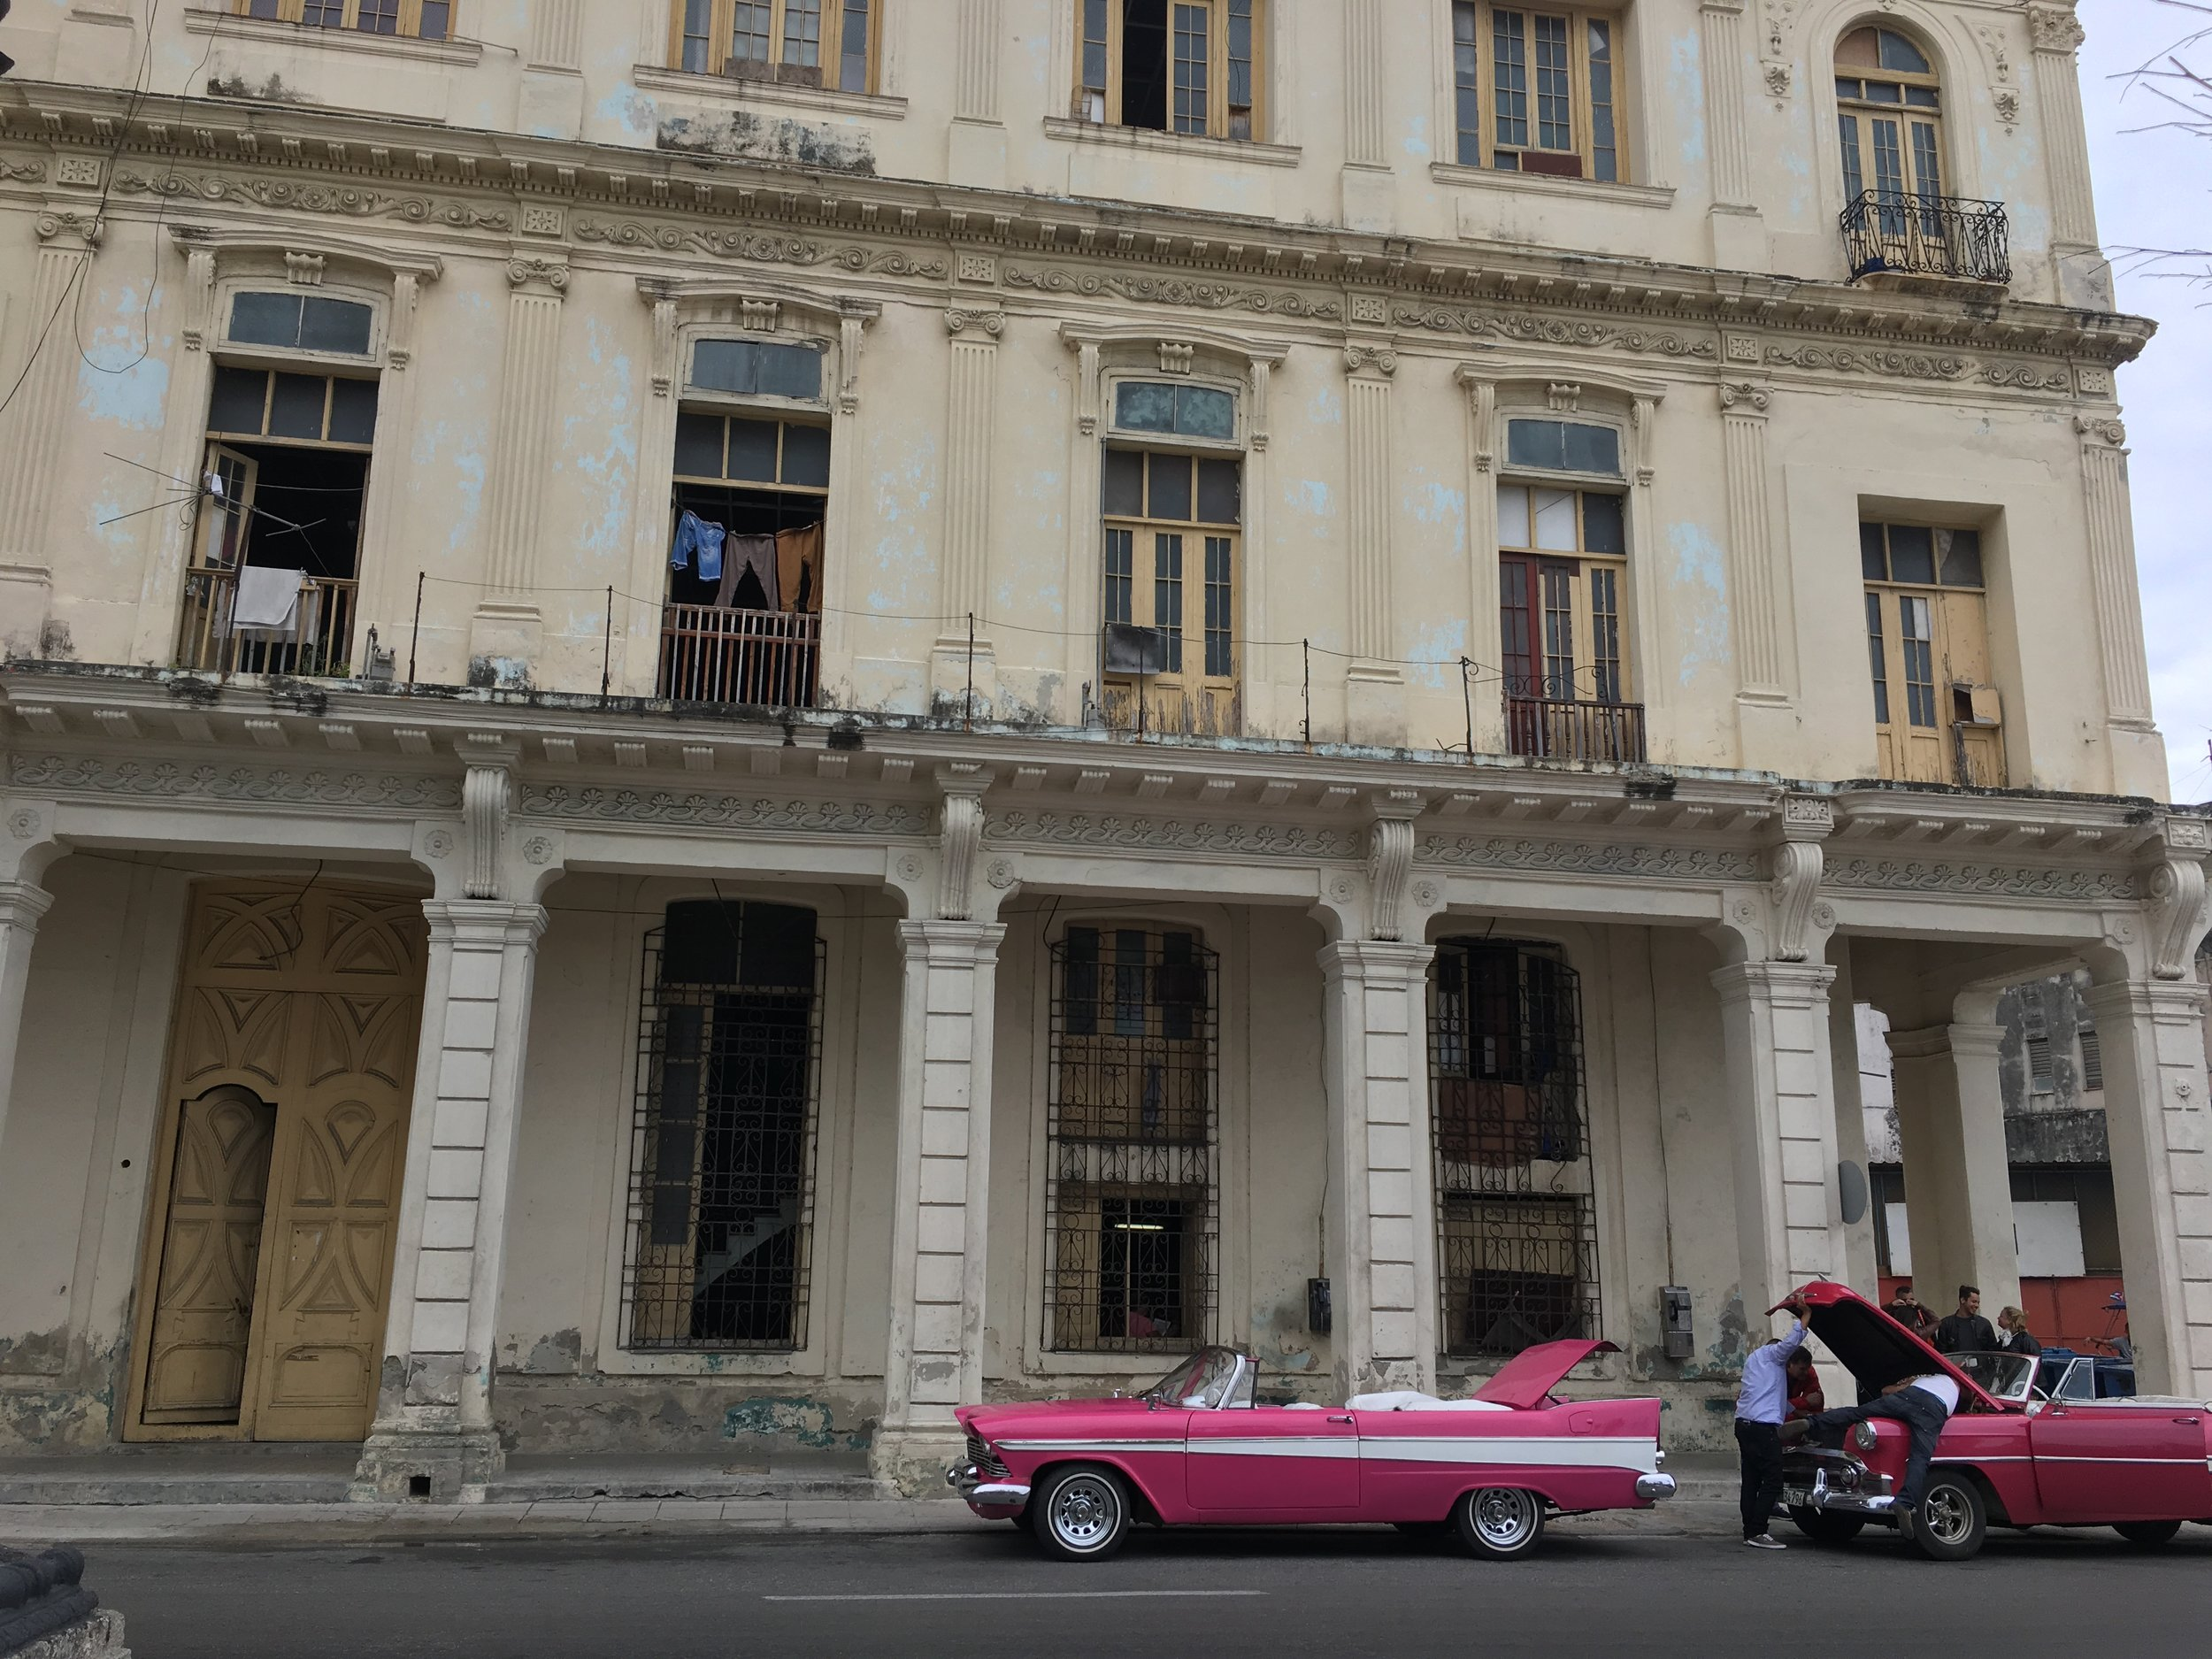 Pink vintage cars in Old Havana